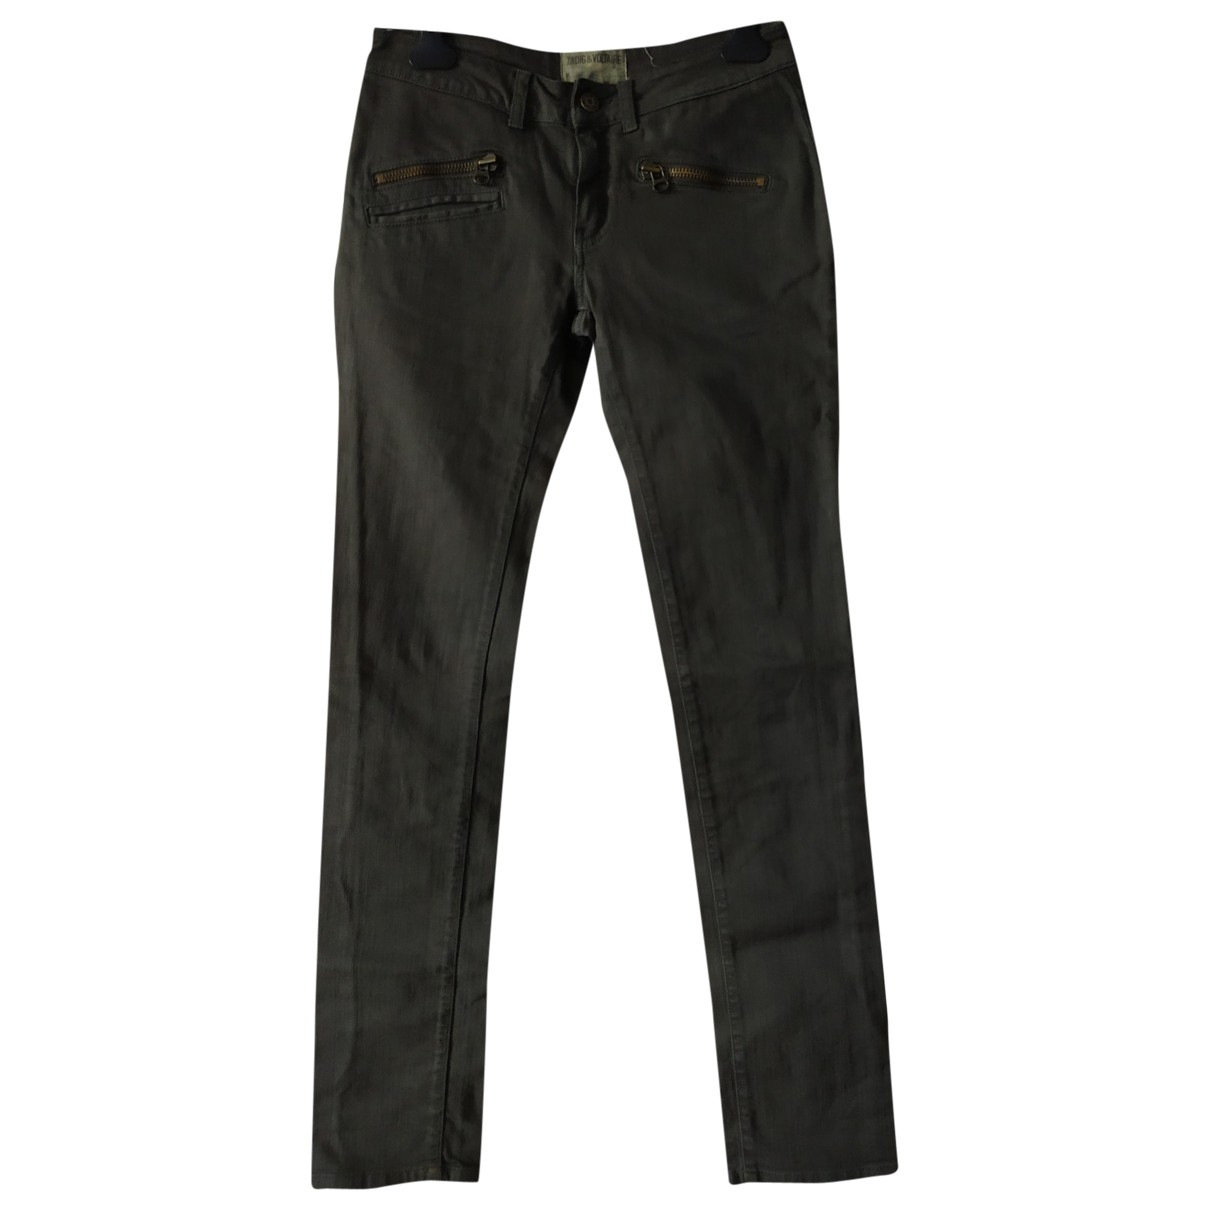 Zadig & Voltaire \N Grey Denim - Jeans Trousers for Women 34 FR